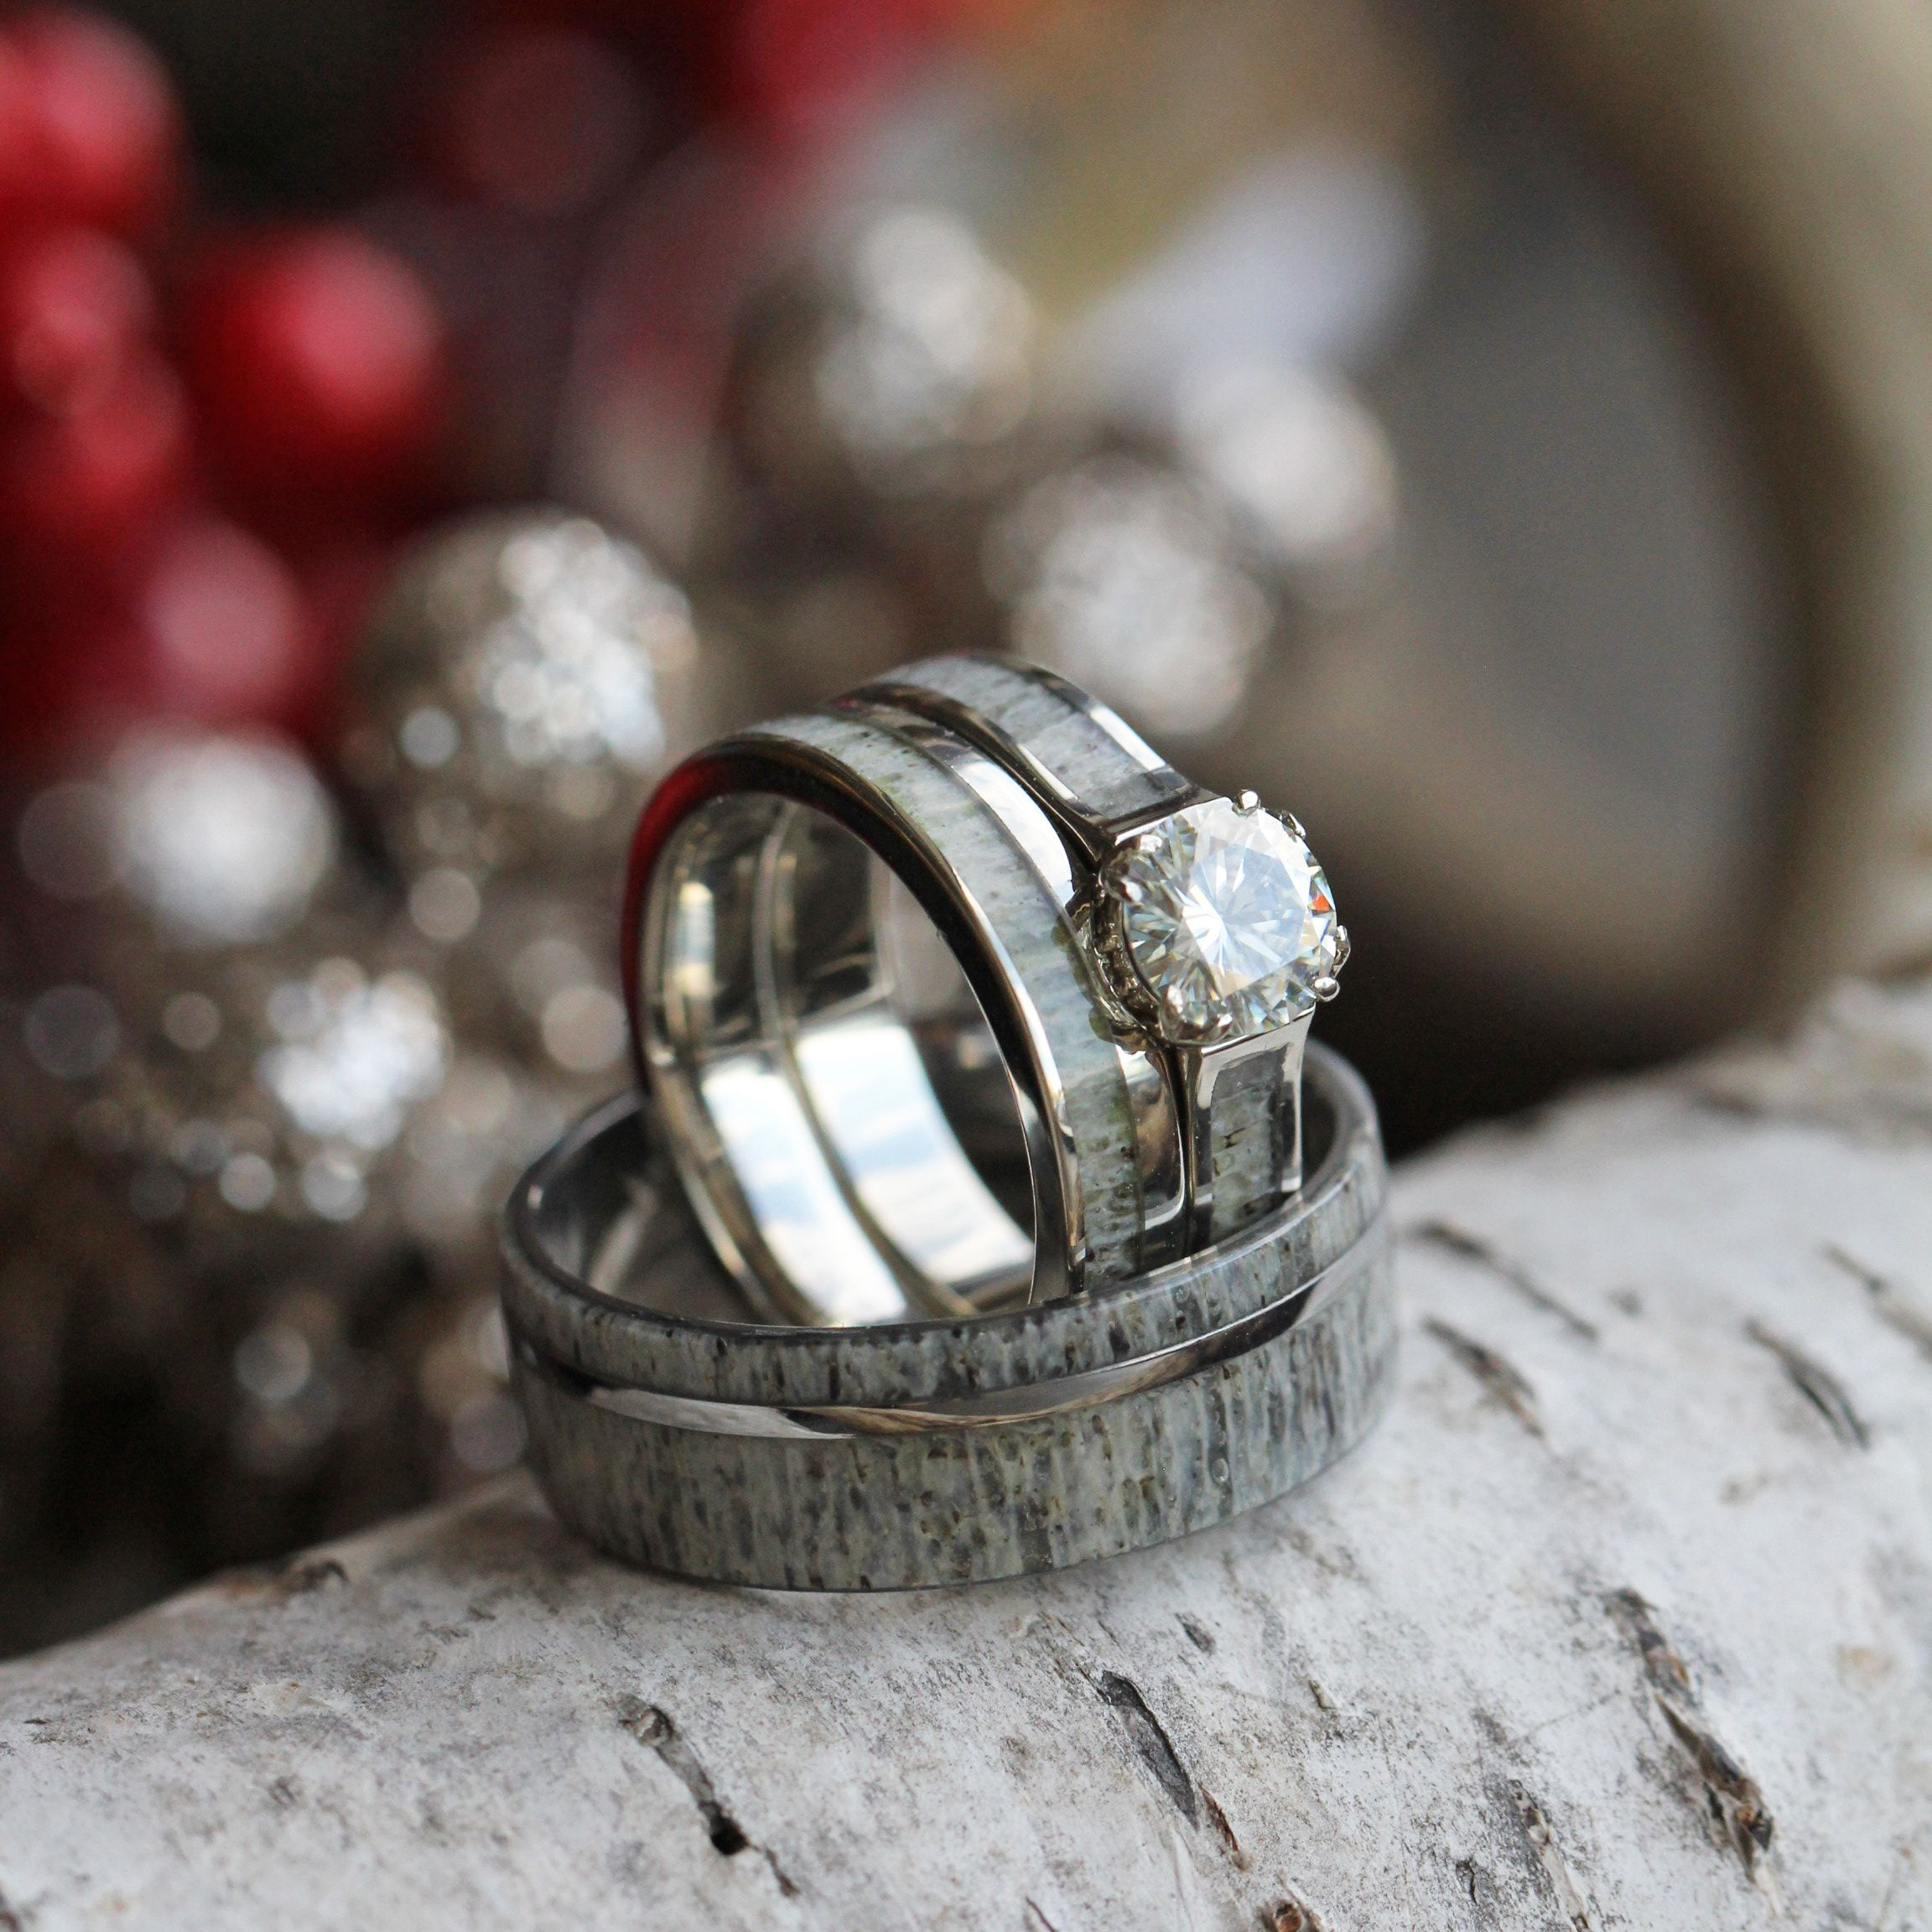 Deer Antler Wedding Ring Set With Moissanite Bridal Set And Men s